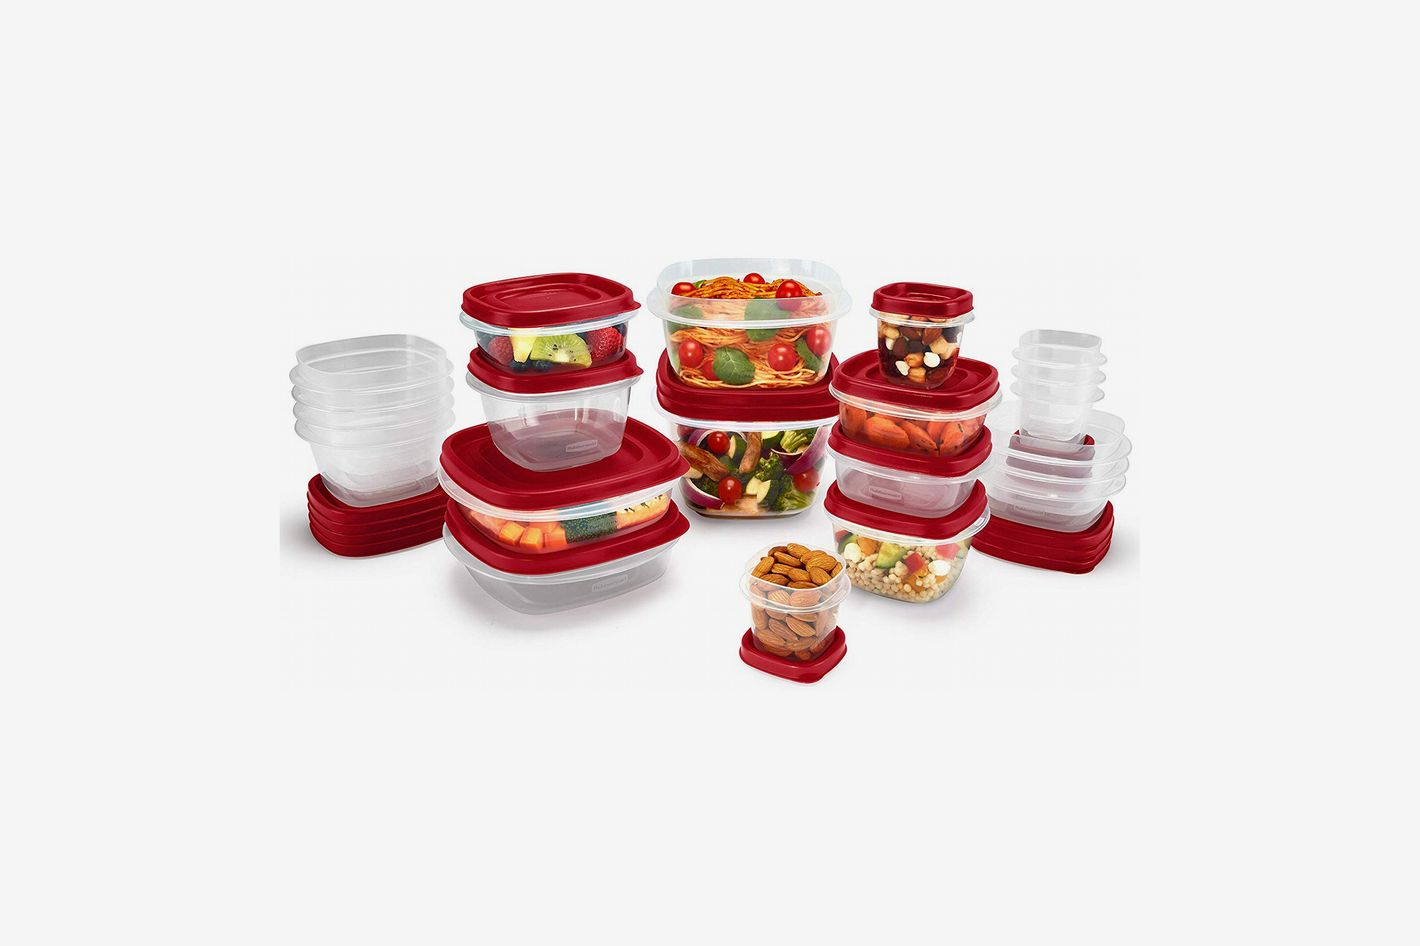 Rubbermaid 2063704 Easy Find Vented Lids Food-Storage Container, 42-Piece